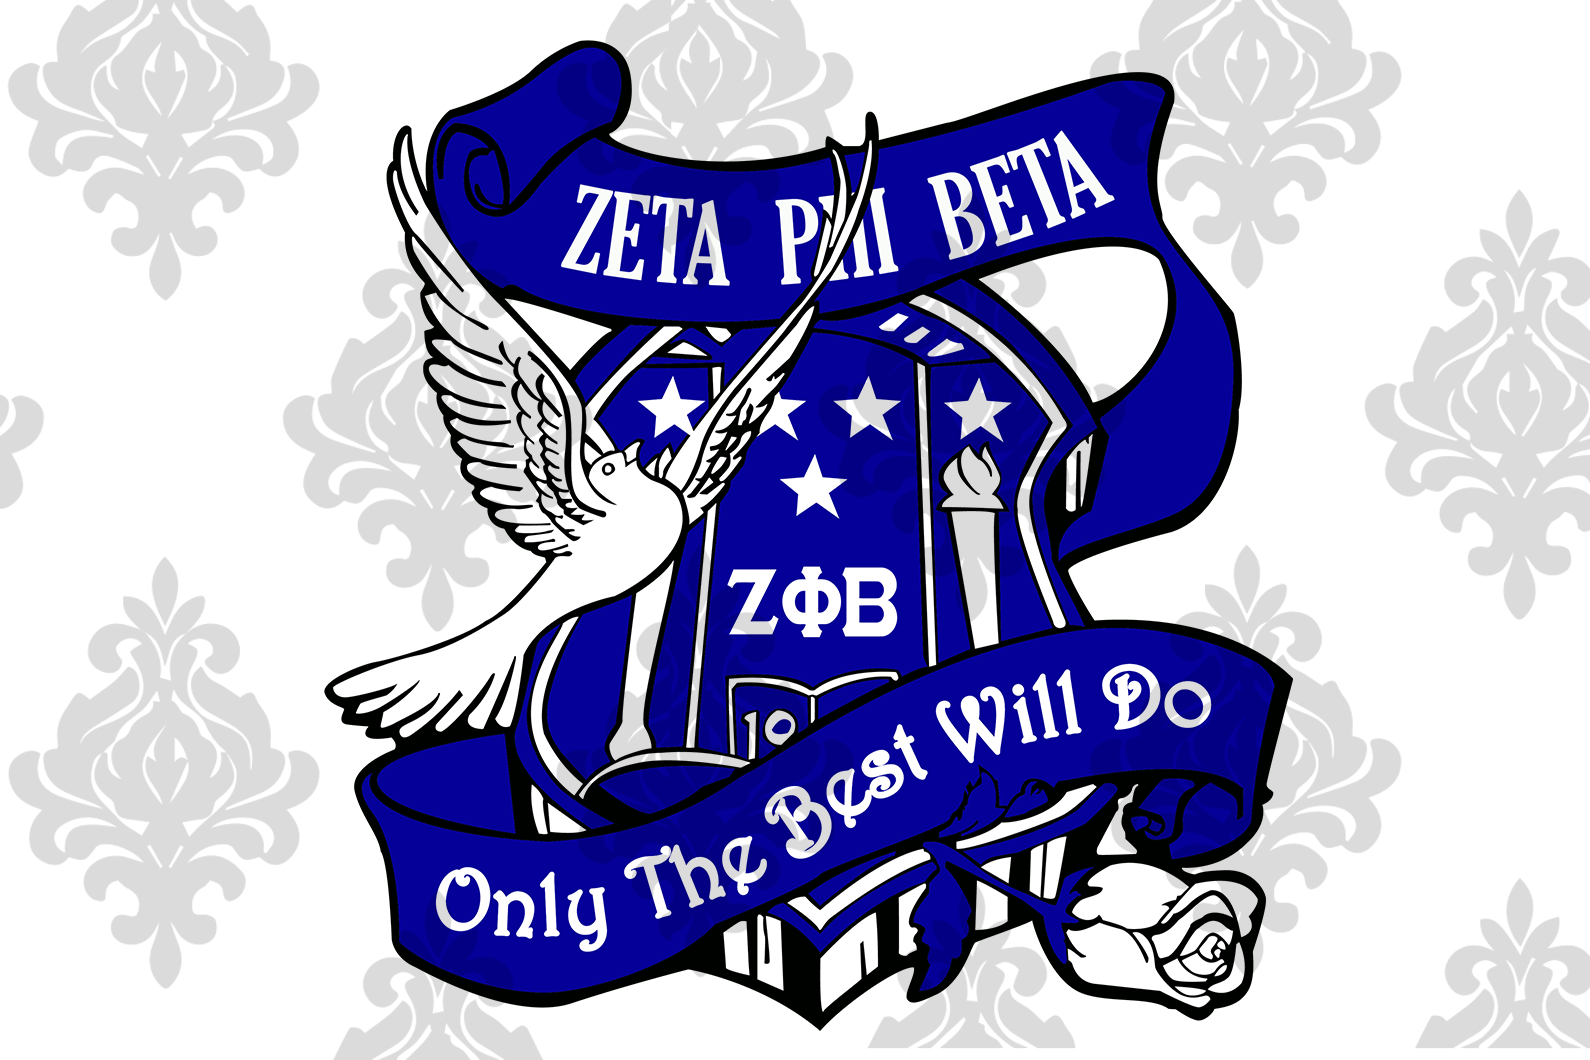 Zeta phi beta only the best will do, zeta svg, 1920 zeta phi beta, z phi b, zeta shirt, zeta sorority, sexy black girl, black girl svg, black woman svg,sorority svg, files for silhouette, files for cricut, svg, dxf, eps, png, instant download